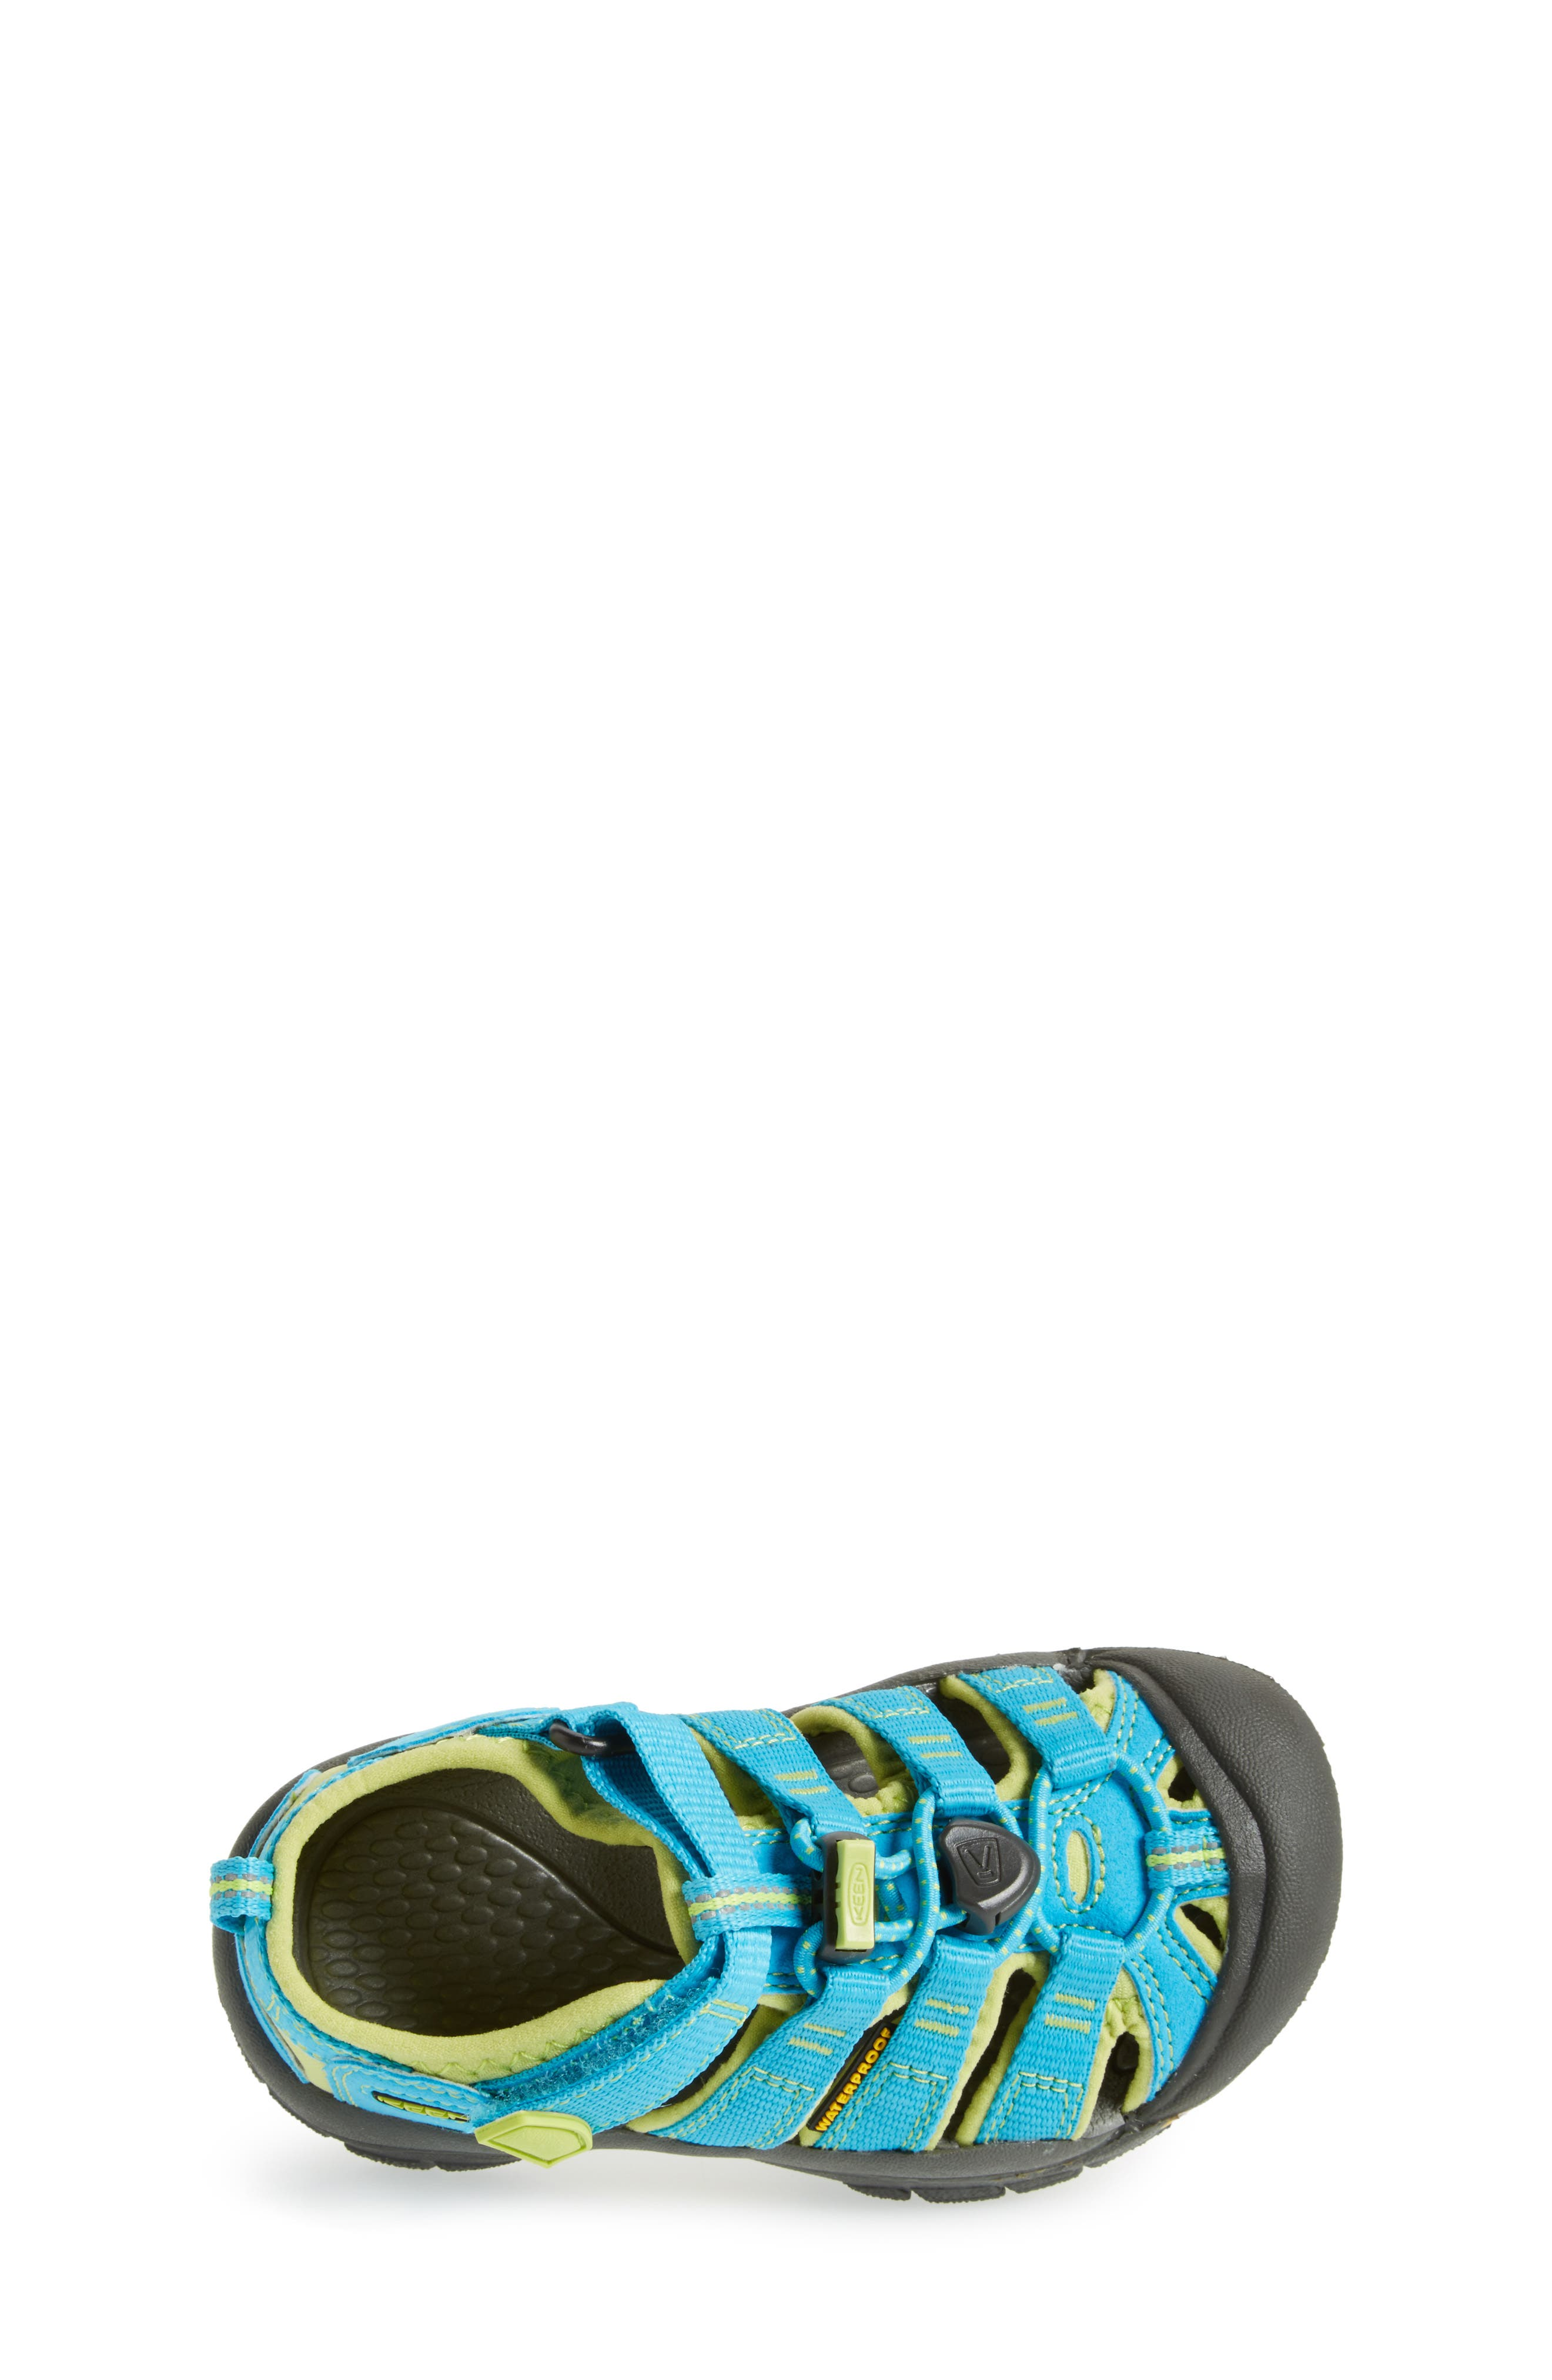 ,                             'Newport H2' Water Friendly Sandal,                             Alternate thumbnail 362, color,                             416